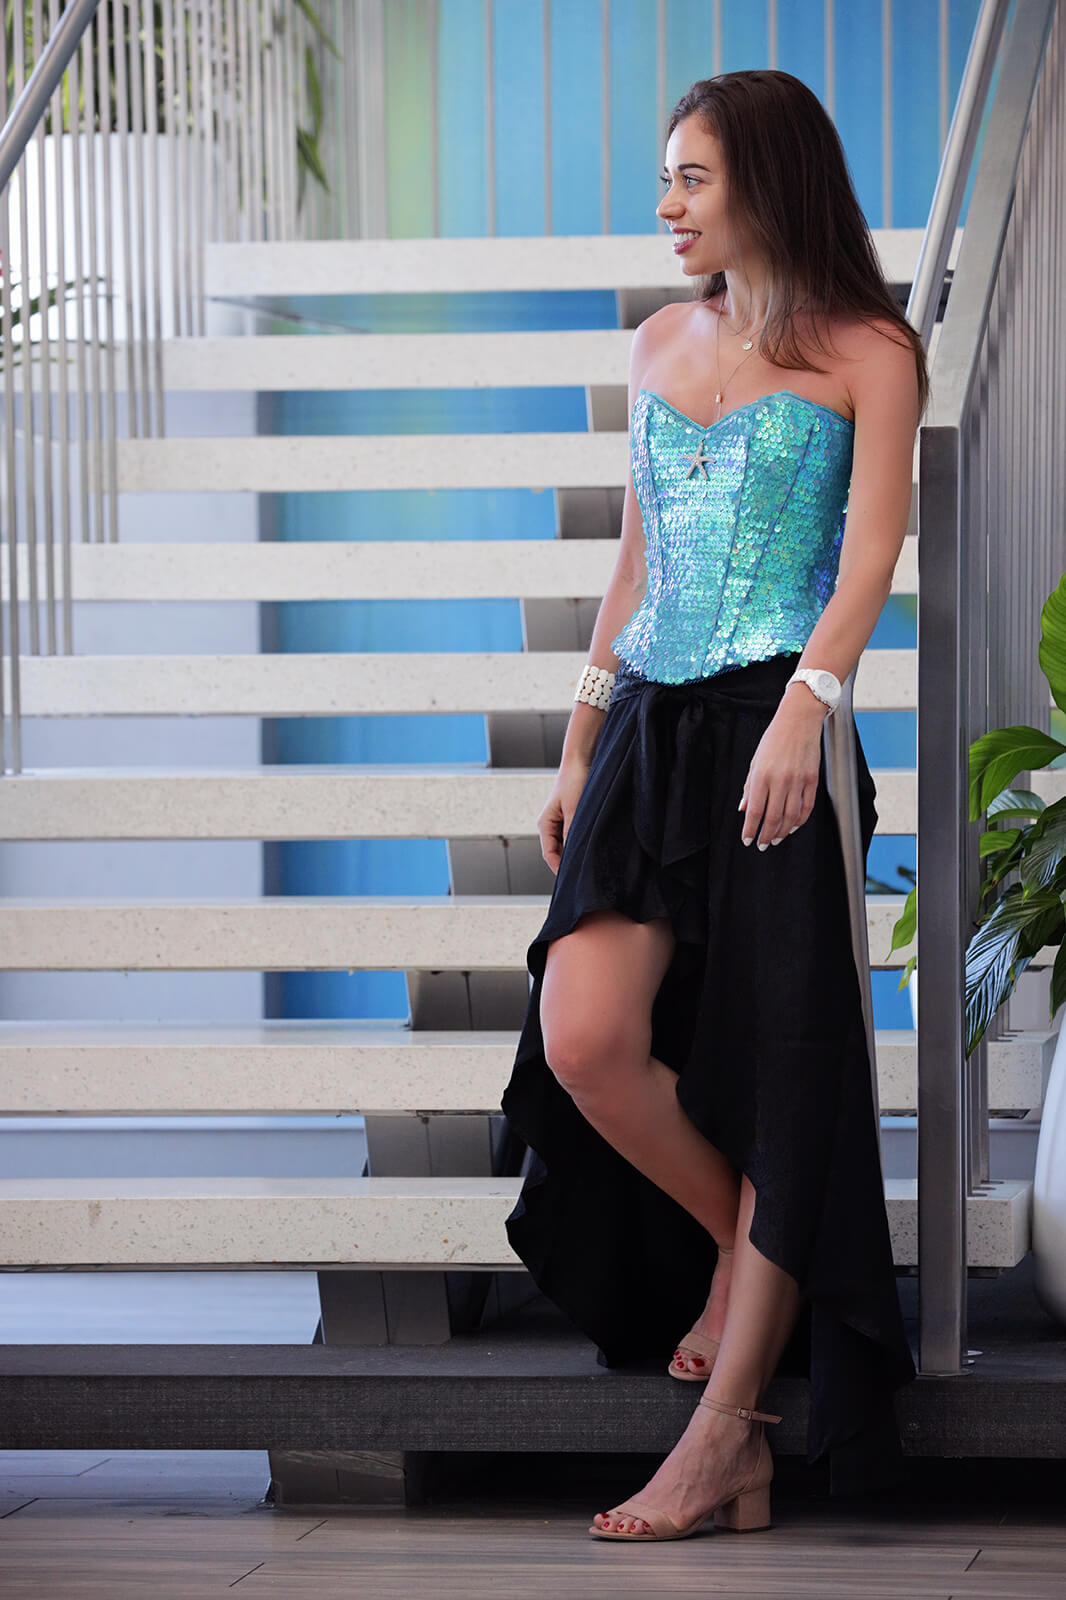 Stella in Sea inspired corset and black dress in front of staircase